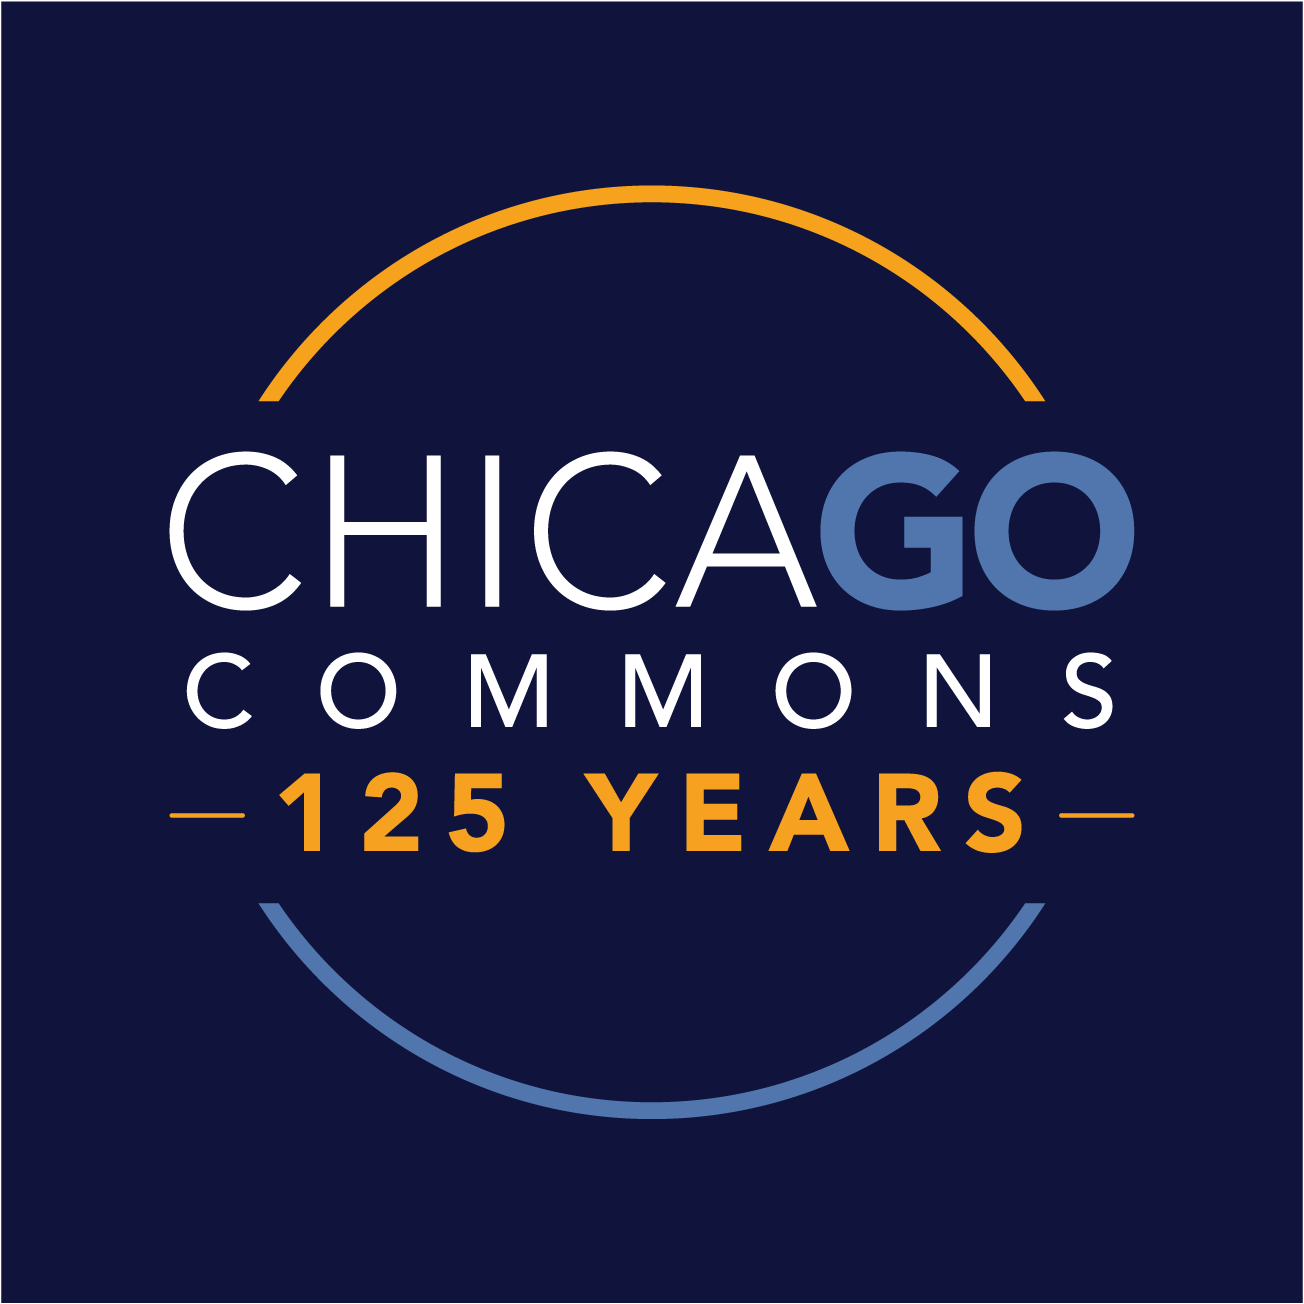 Chicago Commons 125 Years